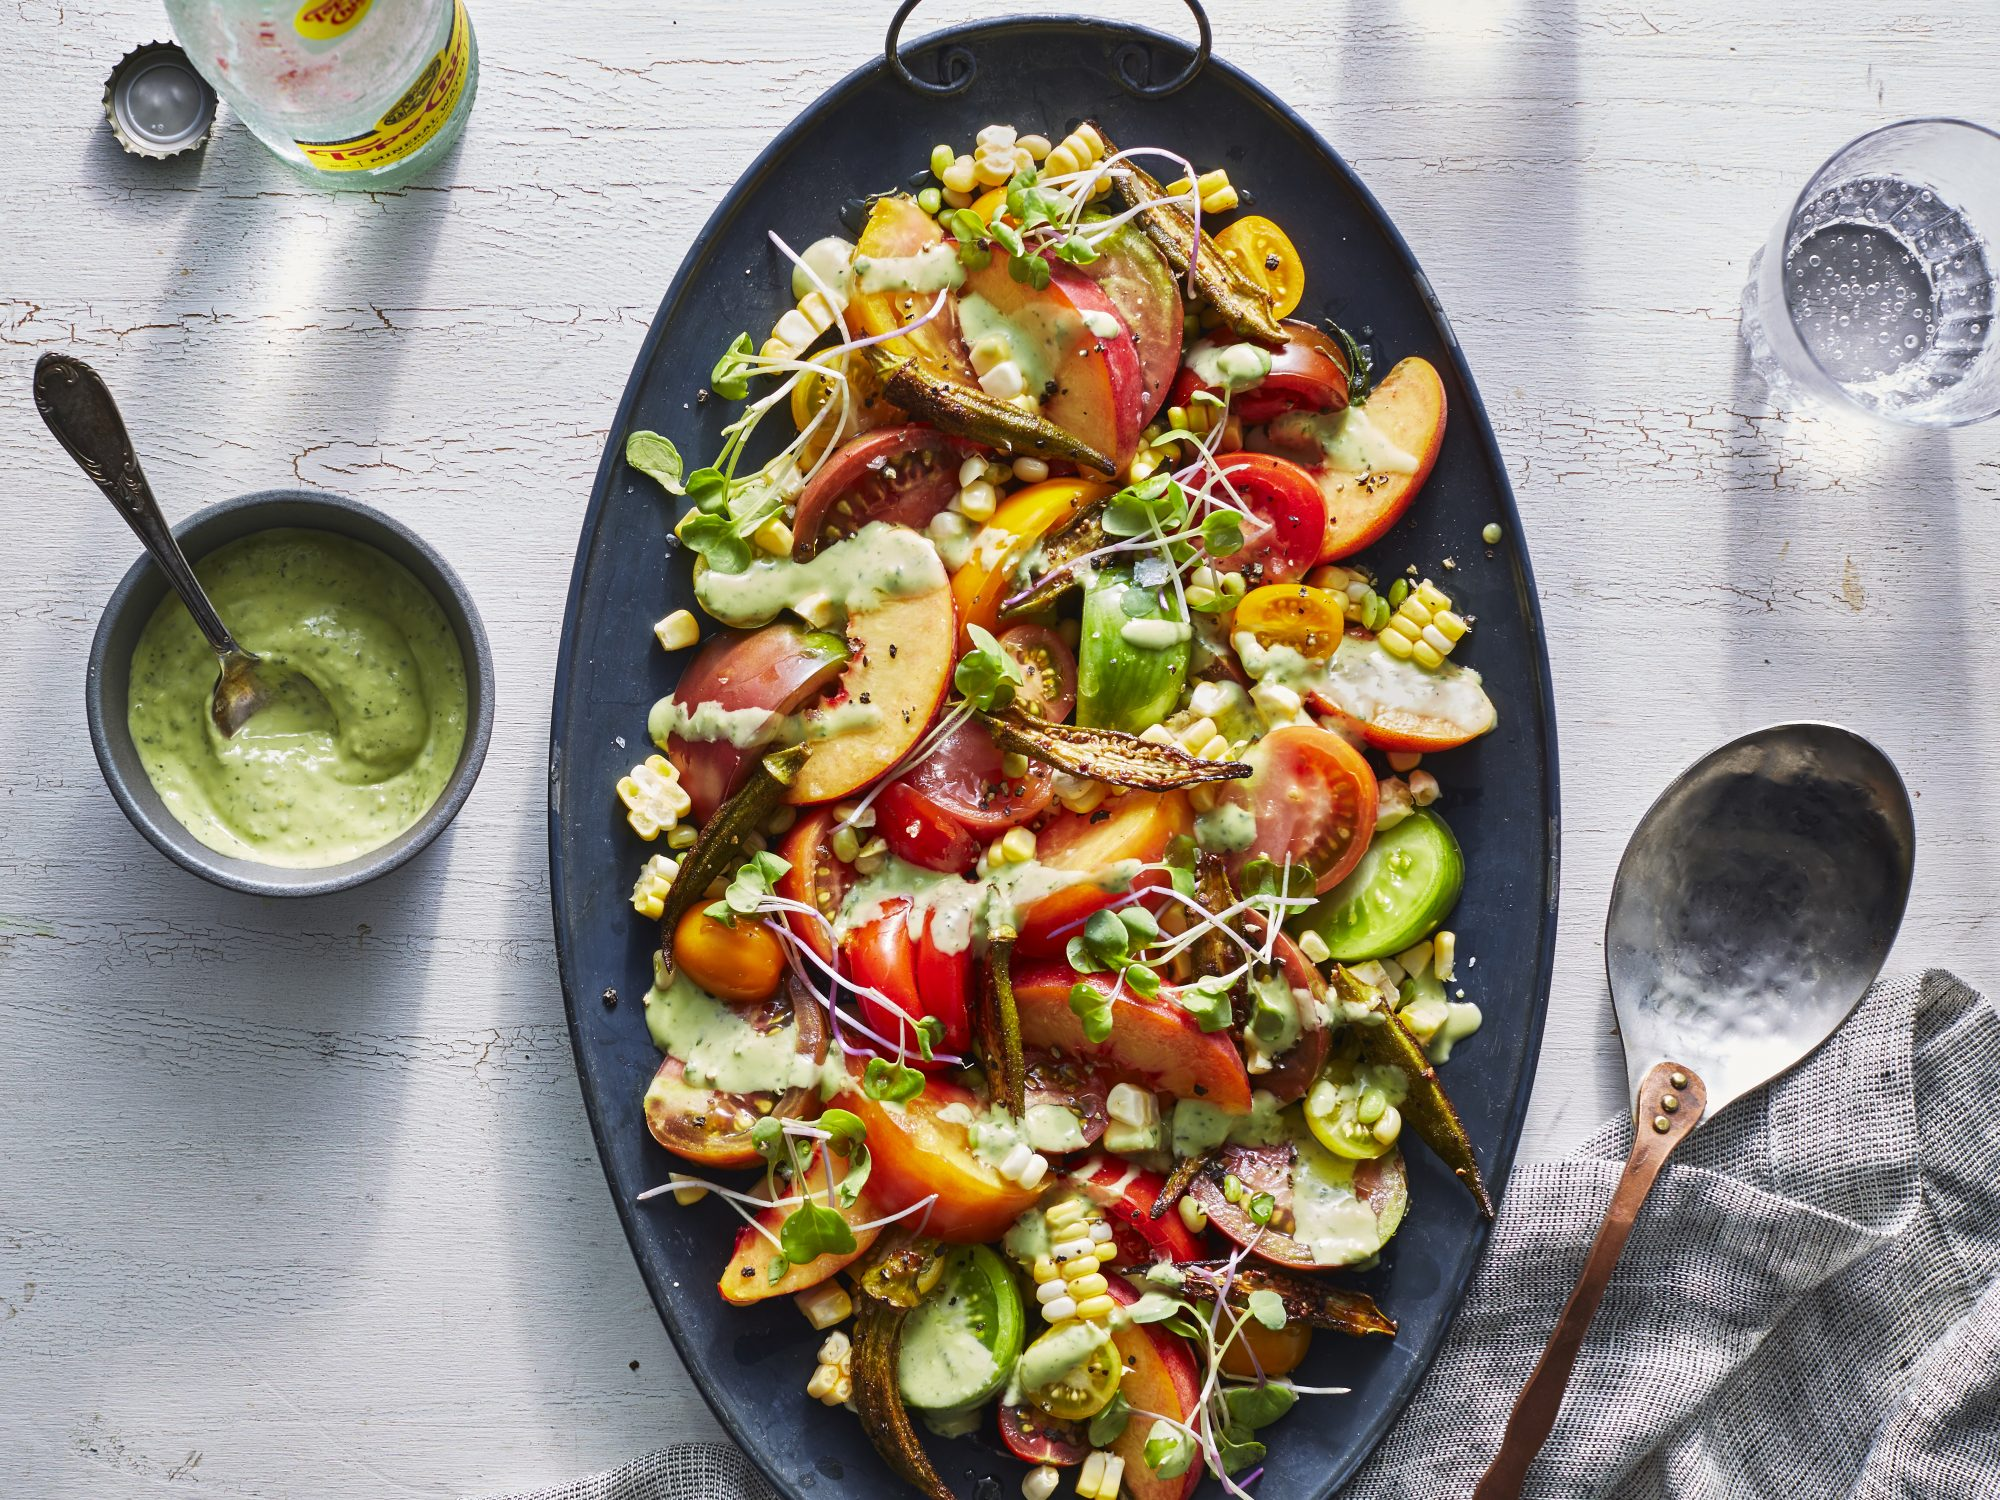 mr-the-ultimate-tomato-salad-image